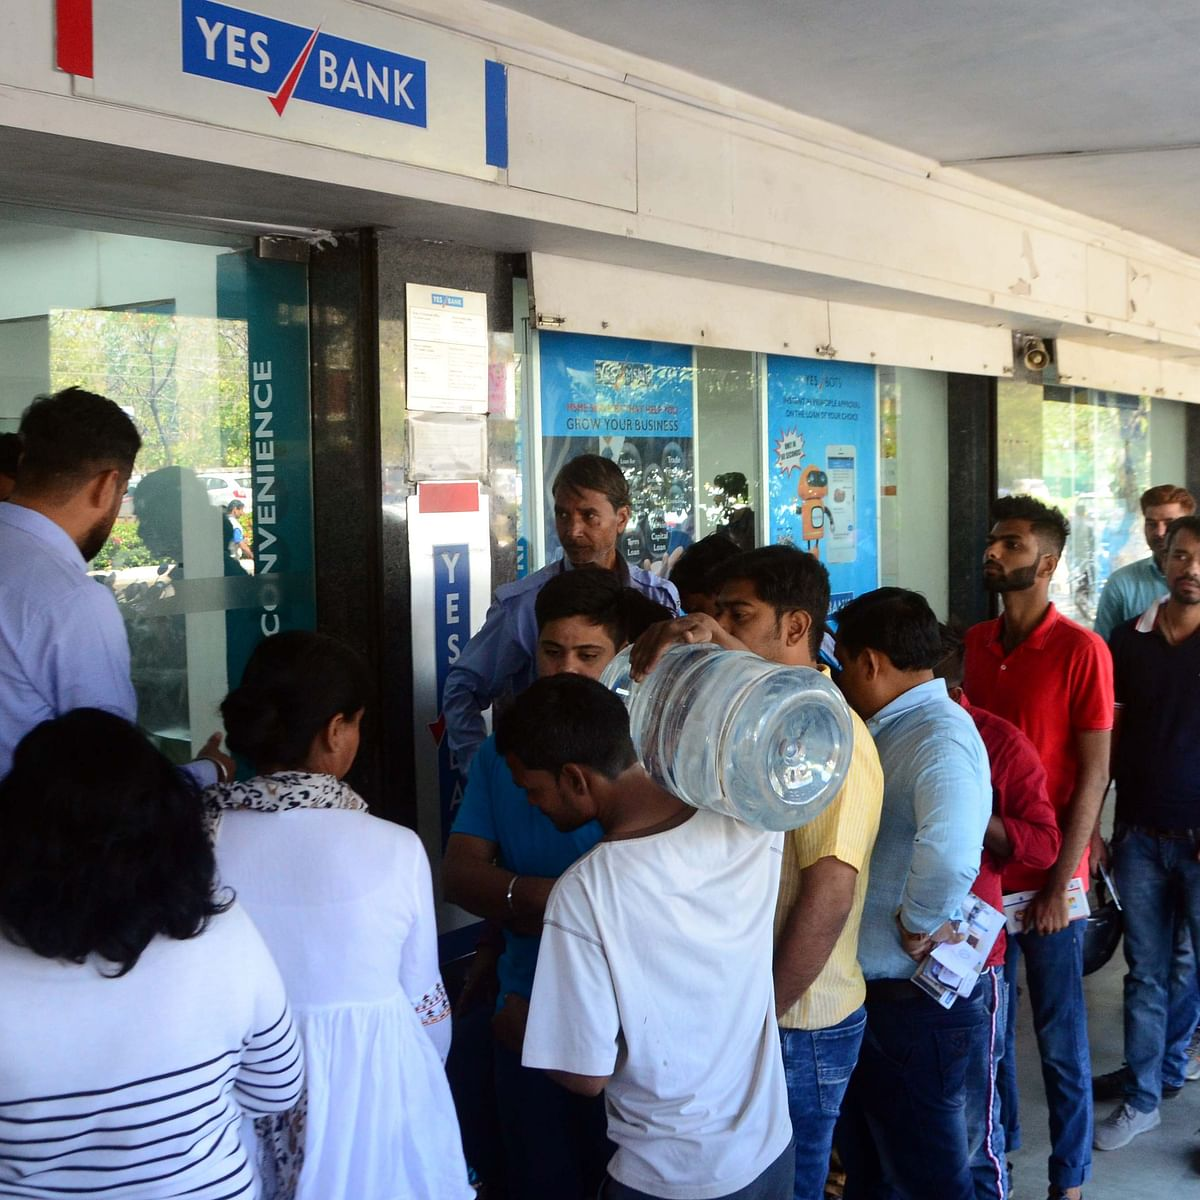 Yes Bank Crisis: Account holders in Bhopal liken trouble to Narendra Modi's Demonetisation